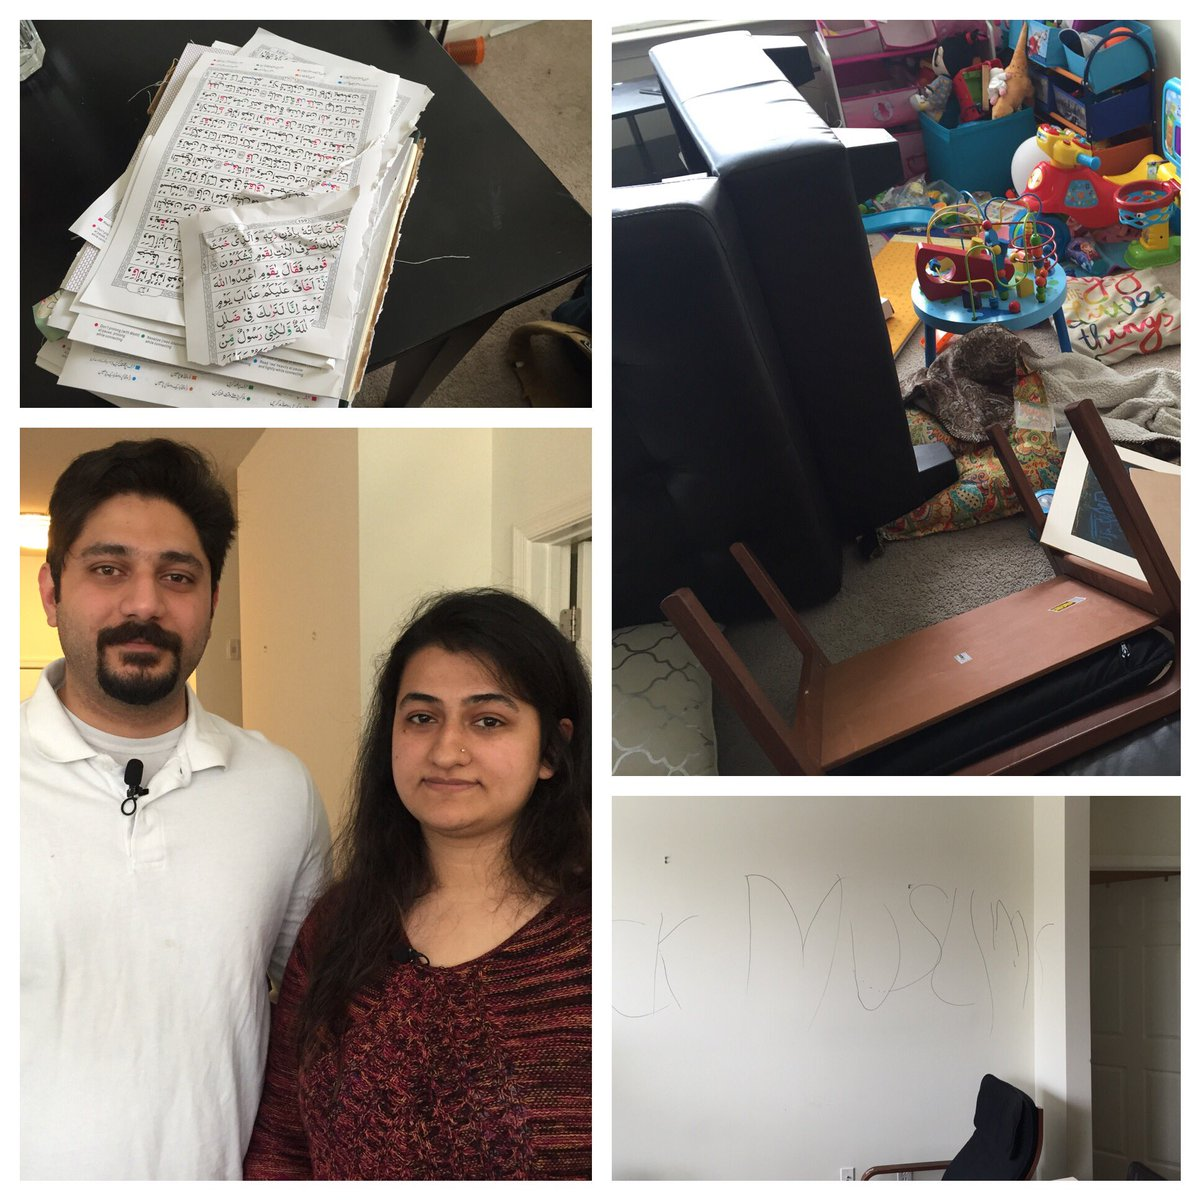 A Muslim couple returns from a  trip to find their #Fairfax Co home ransacked, the Quran torn, a slur on the wall. The story #NBC4DC@6 <br>http://pic.twitter.com/fgLu66PWim